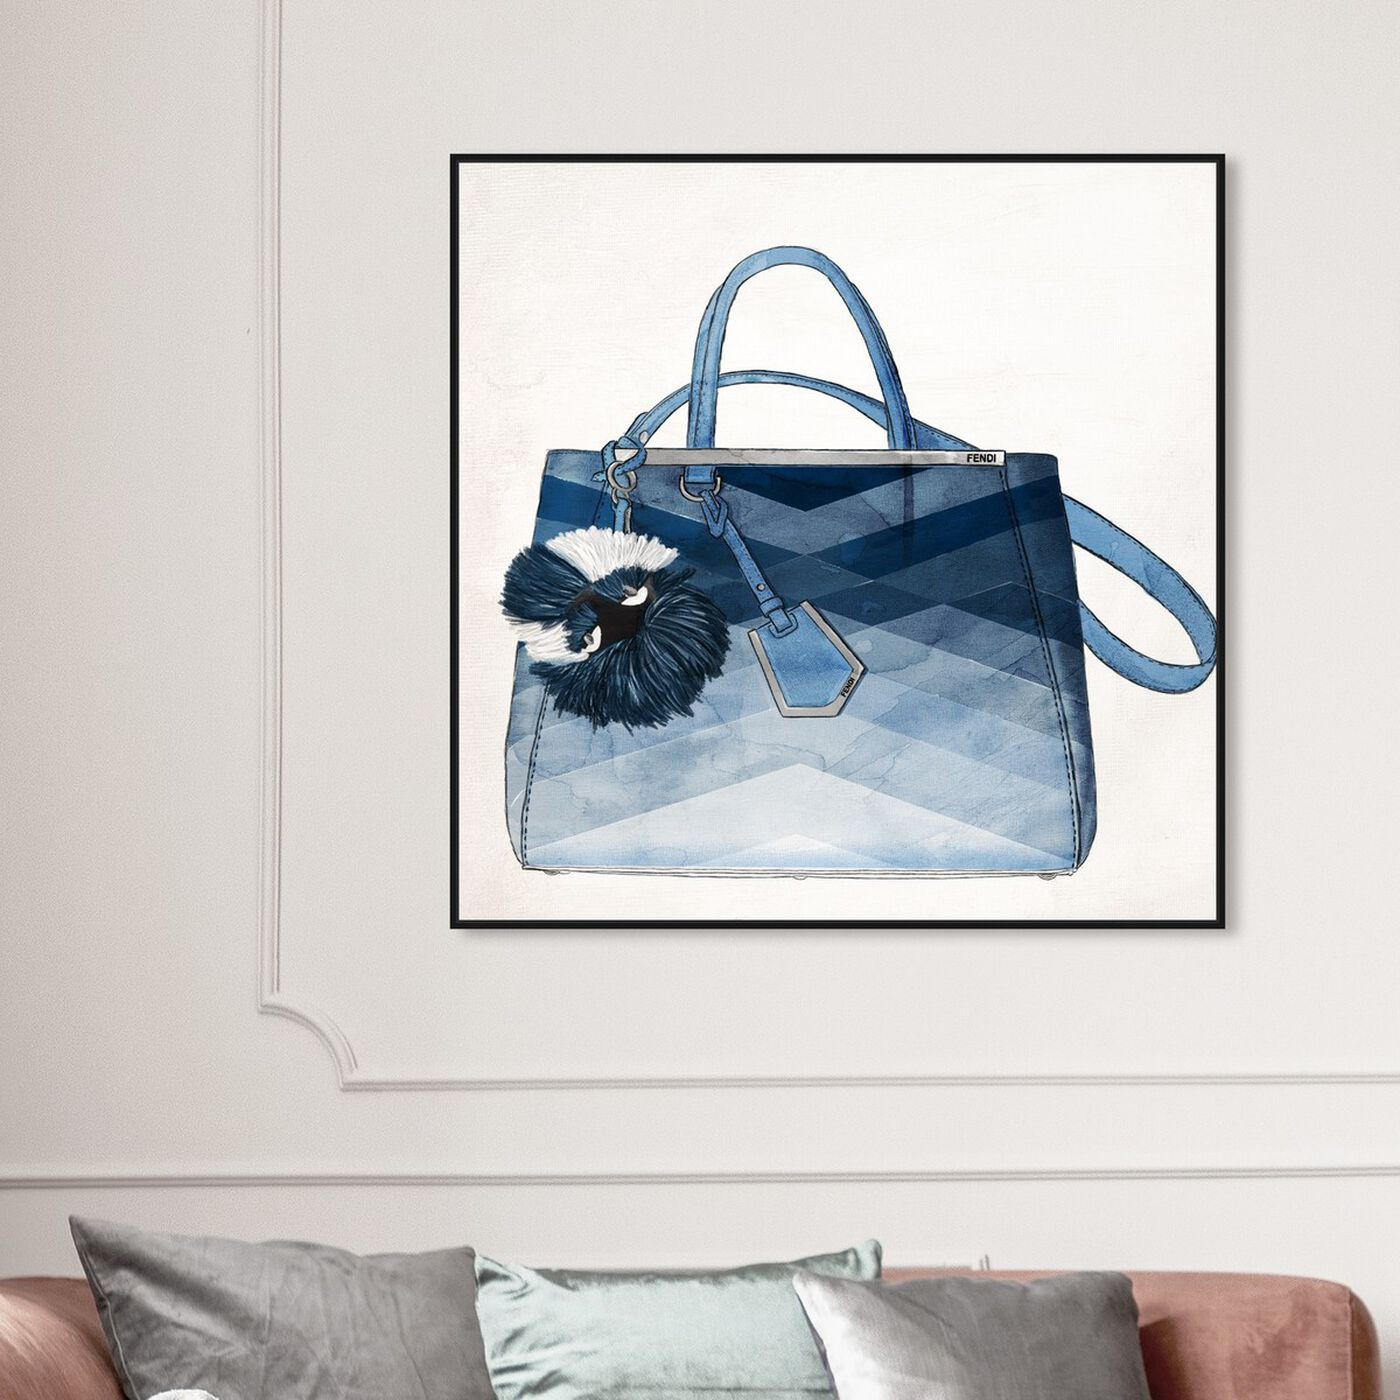 Hanging view of Oh My Gosh It's Blue featuring fashion and glam and handbags art.